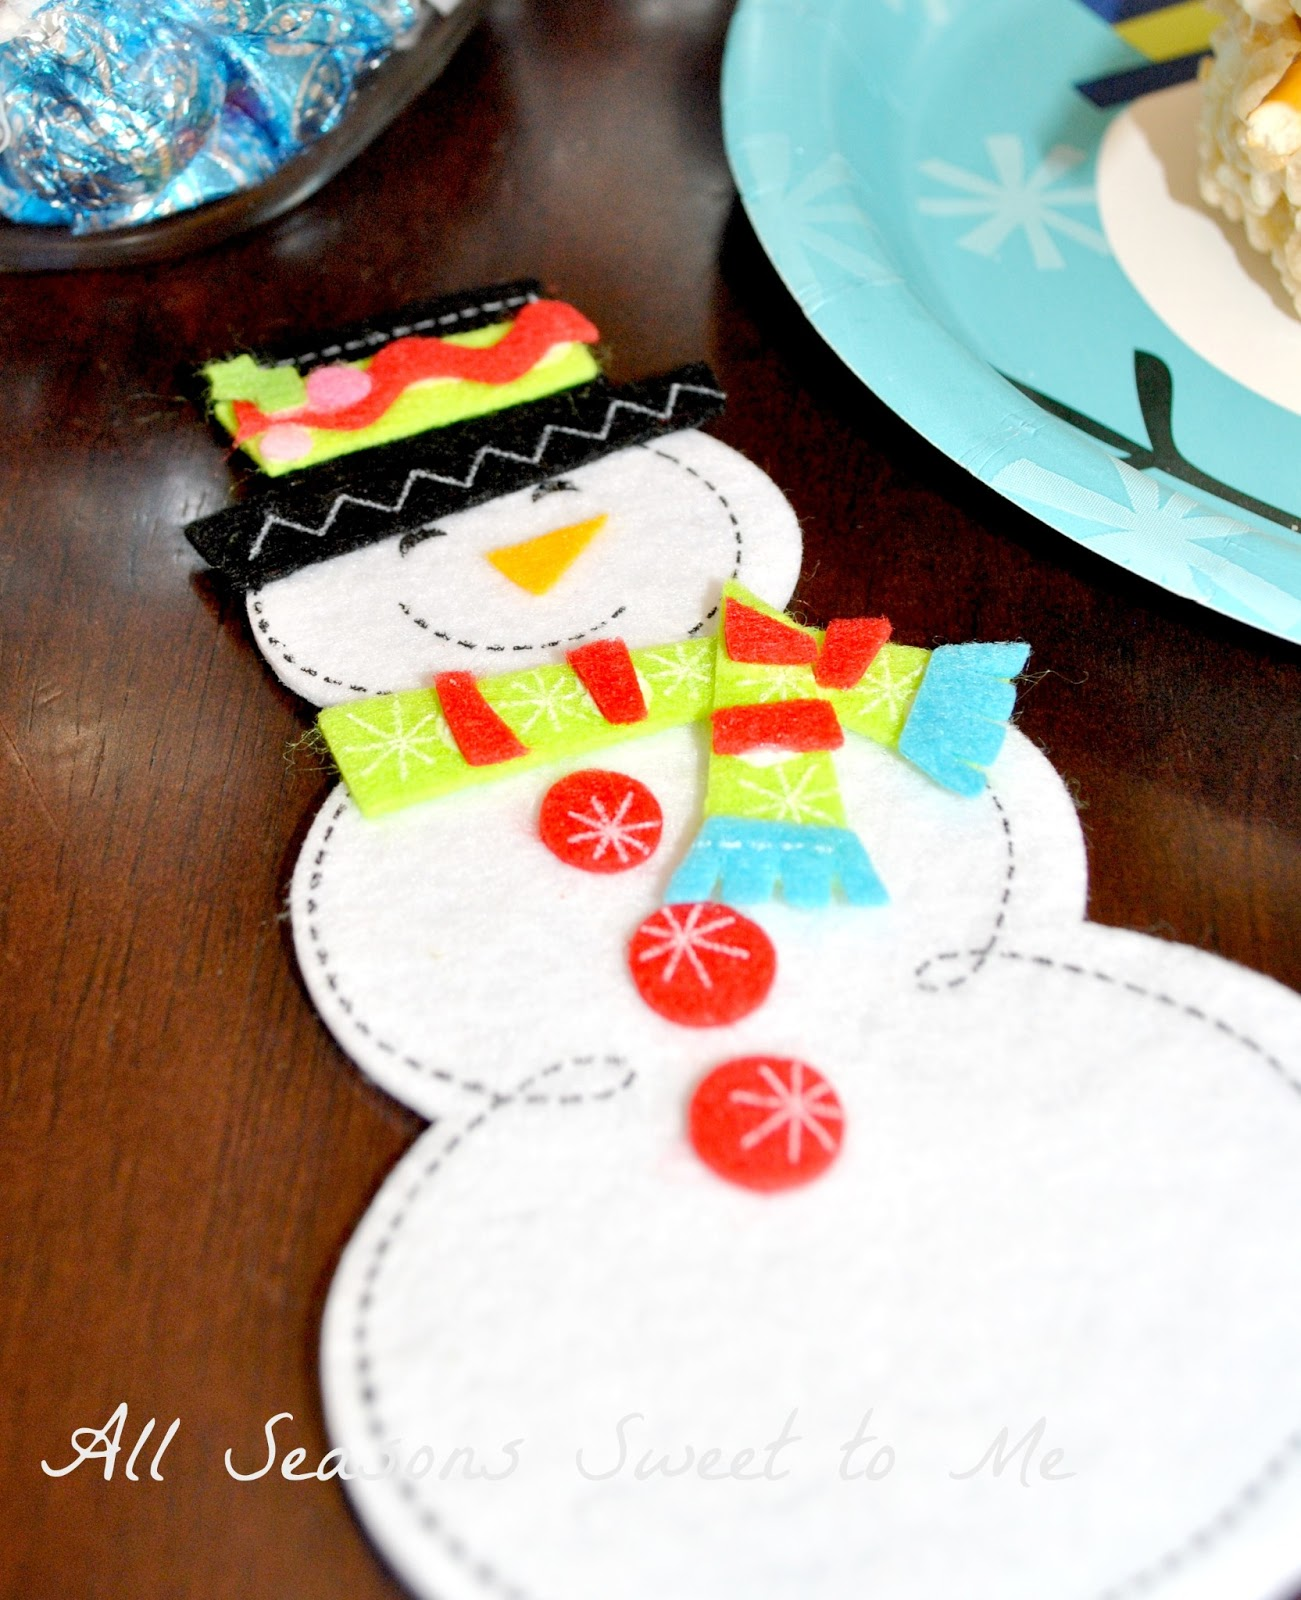 All seasons sweet to me snowmen and polar animal fun we also put together a paper plate snowman just turn the plate over and use colored construction paper to cut out a hat nose eyes and mouth jeuxipadfo Gallery